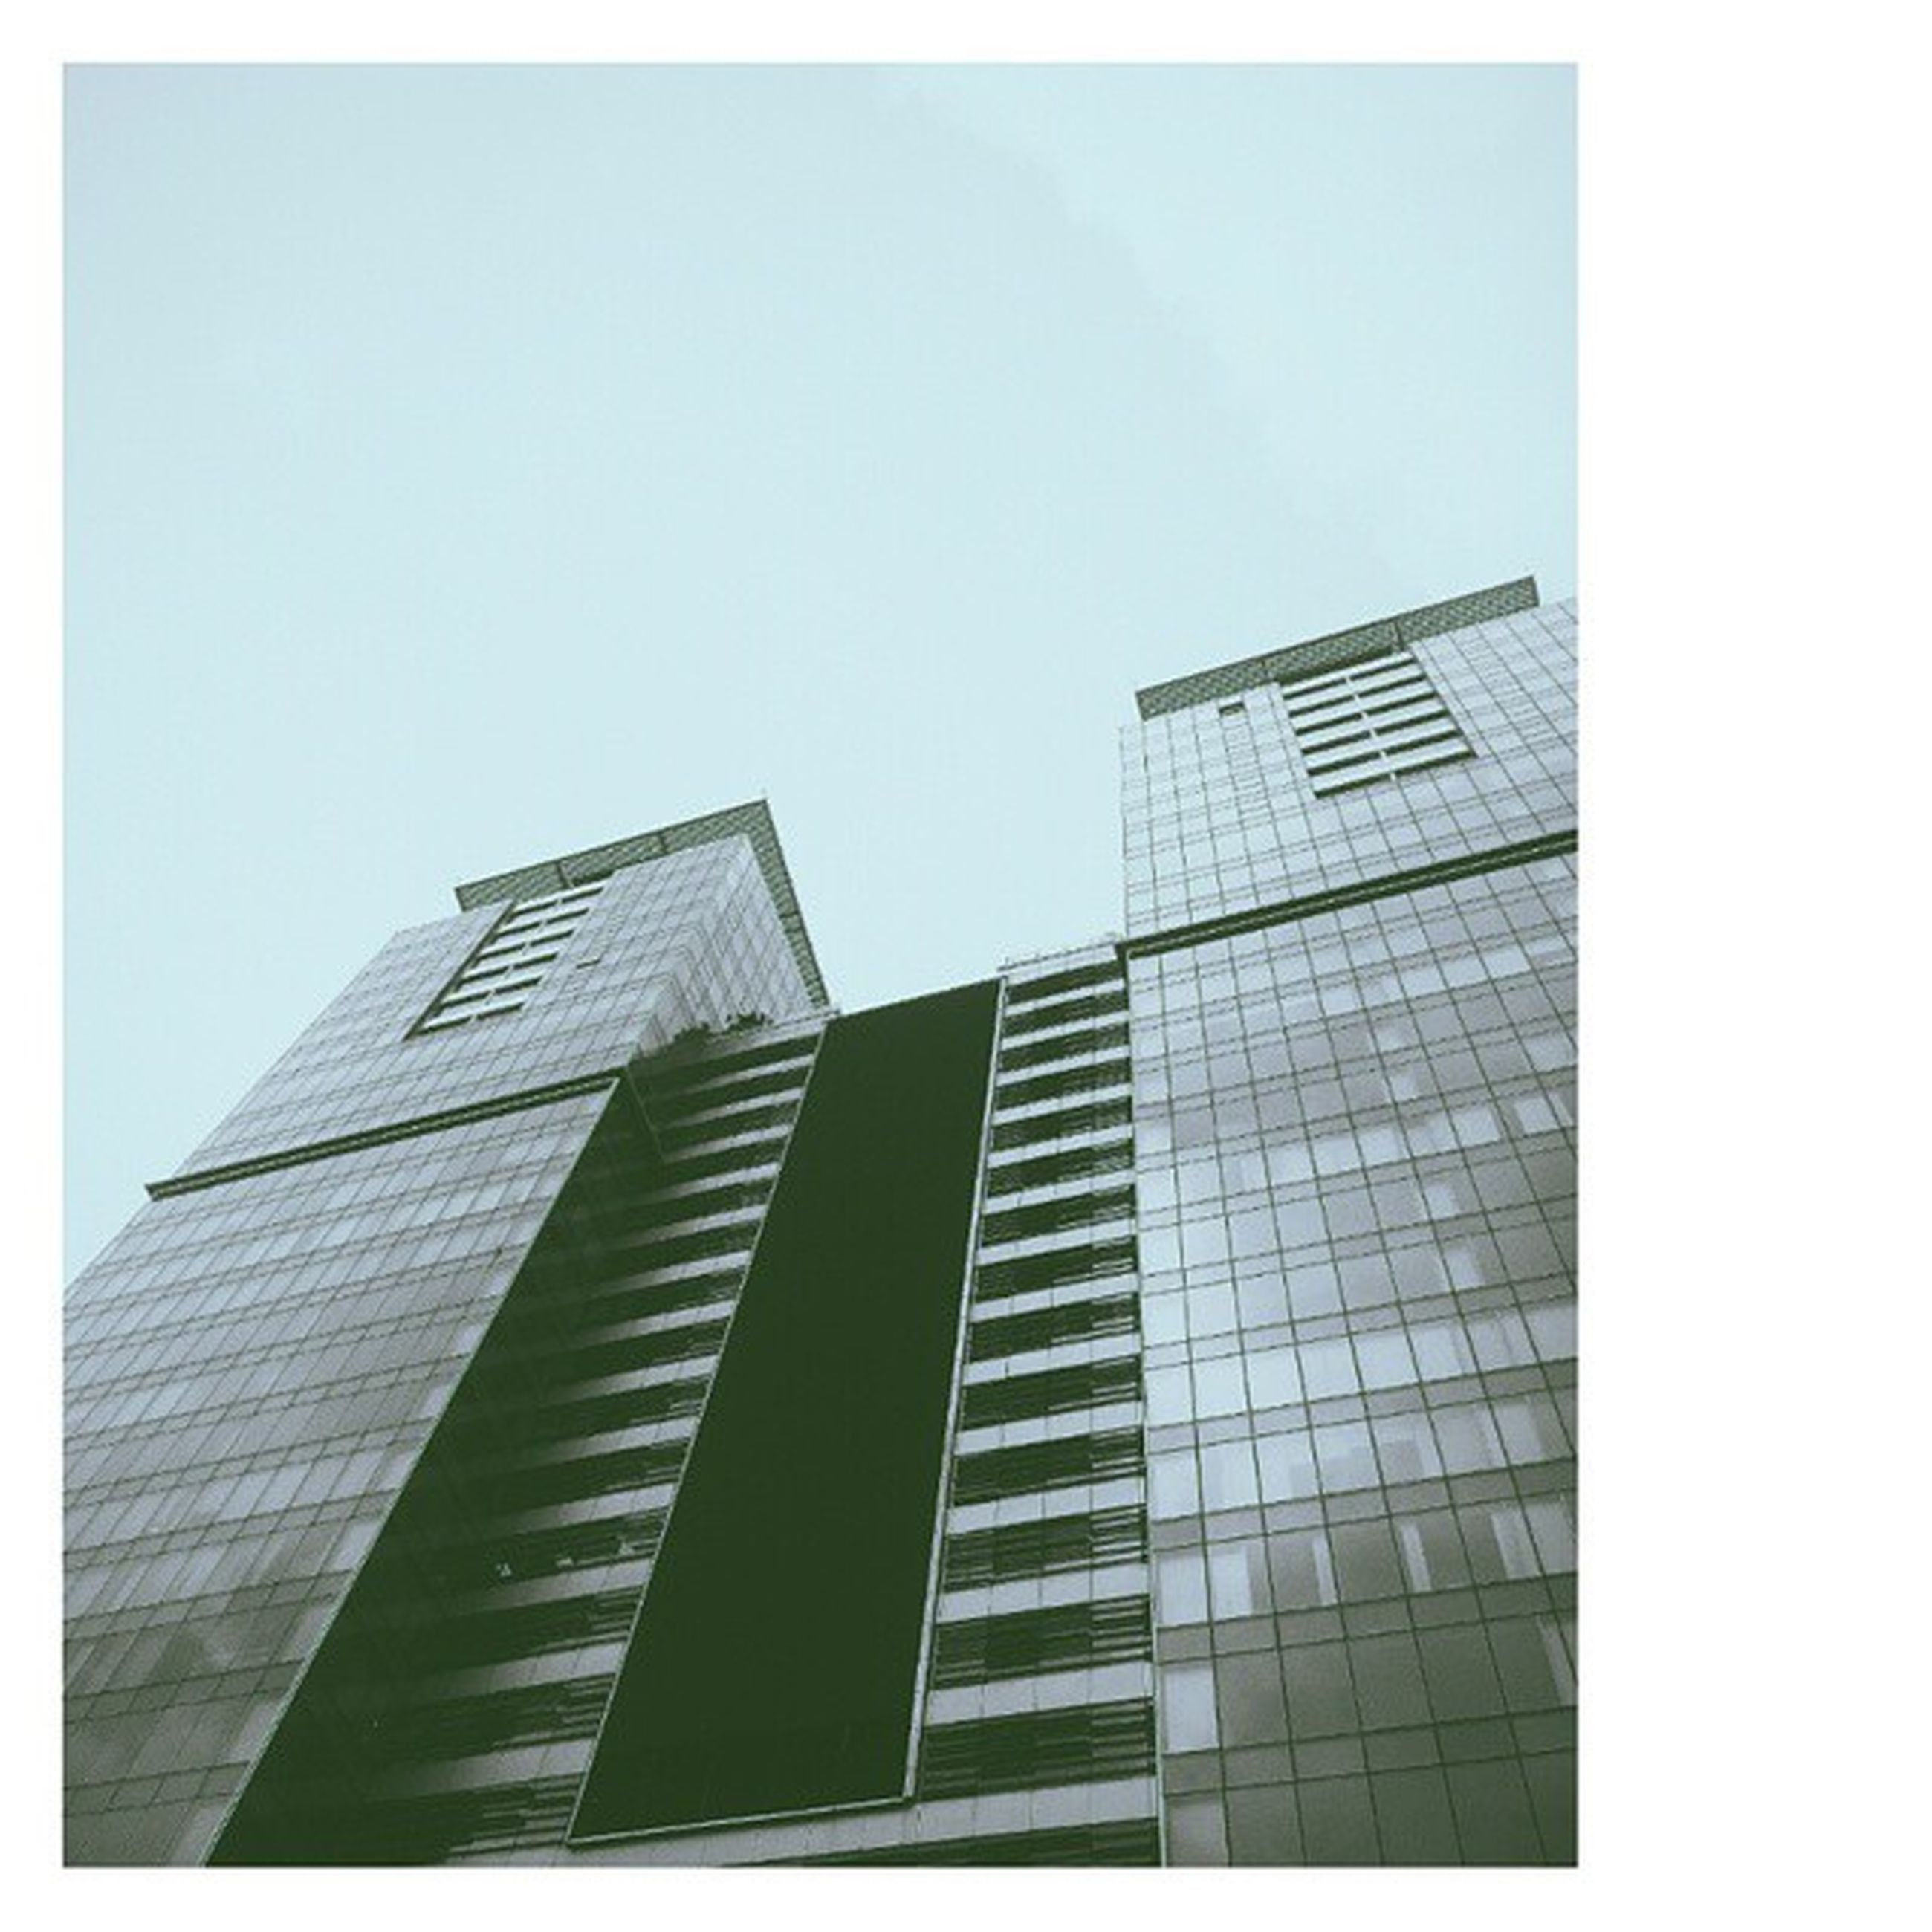 architecture, building exterior, built structure, low angle view, clear sky, office building, tall - high, skyscraper, modern, tower, transfer print, city, auto post production filter, building, glass - material, tall, sky, copy space, day, window